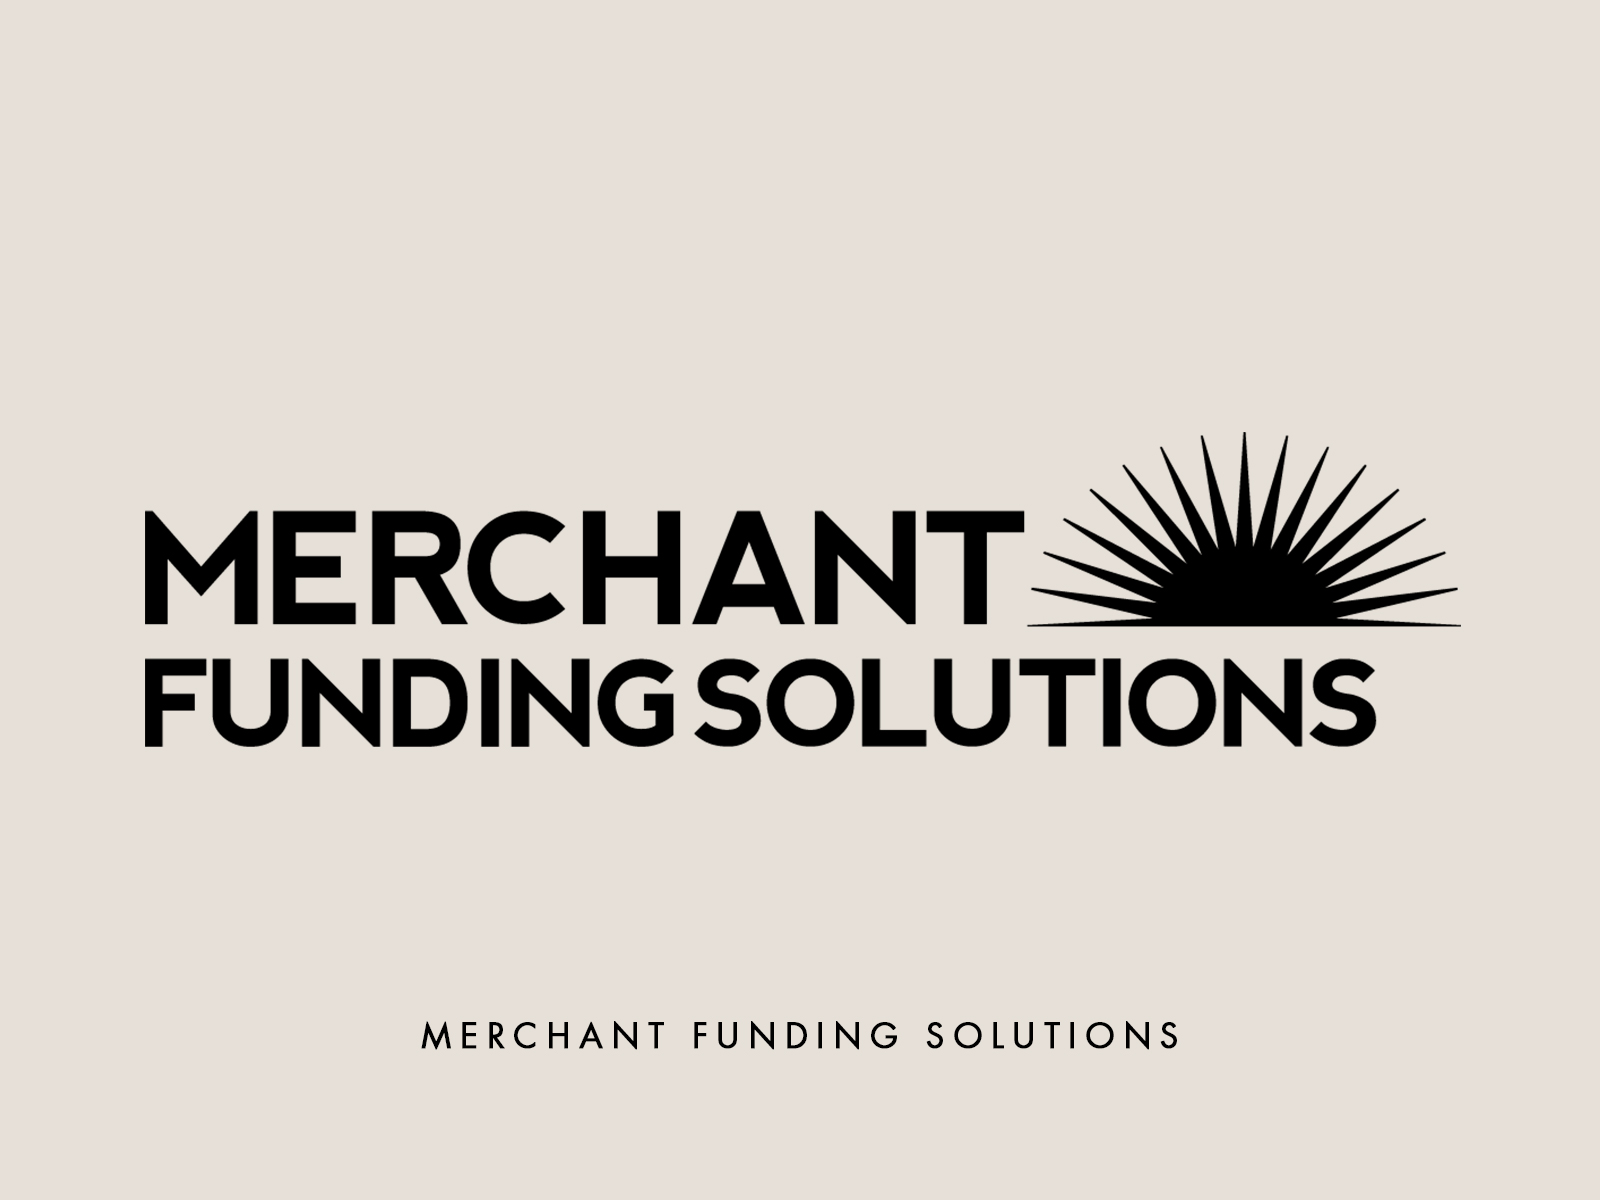 logo_MerchantFundingSolutions.jpg